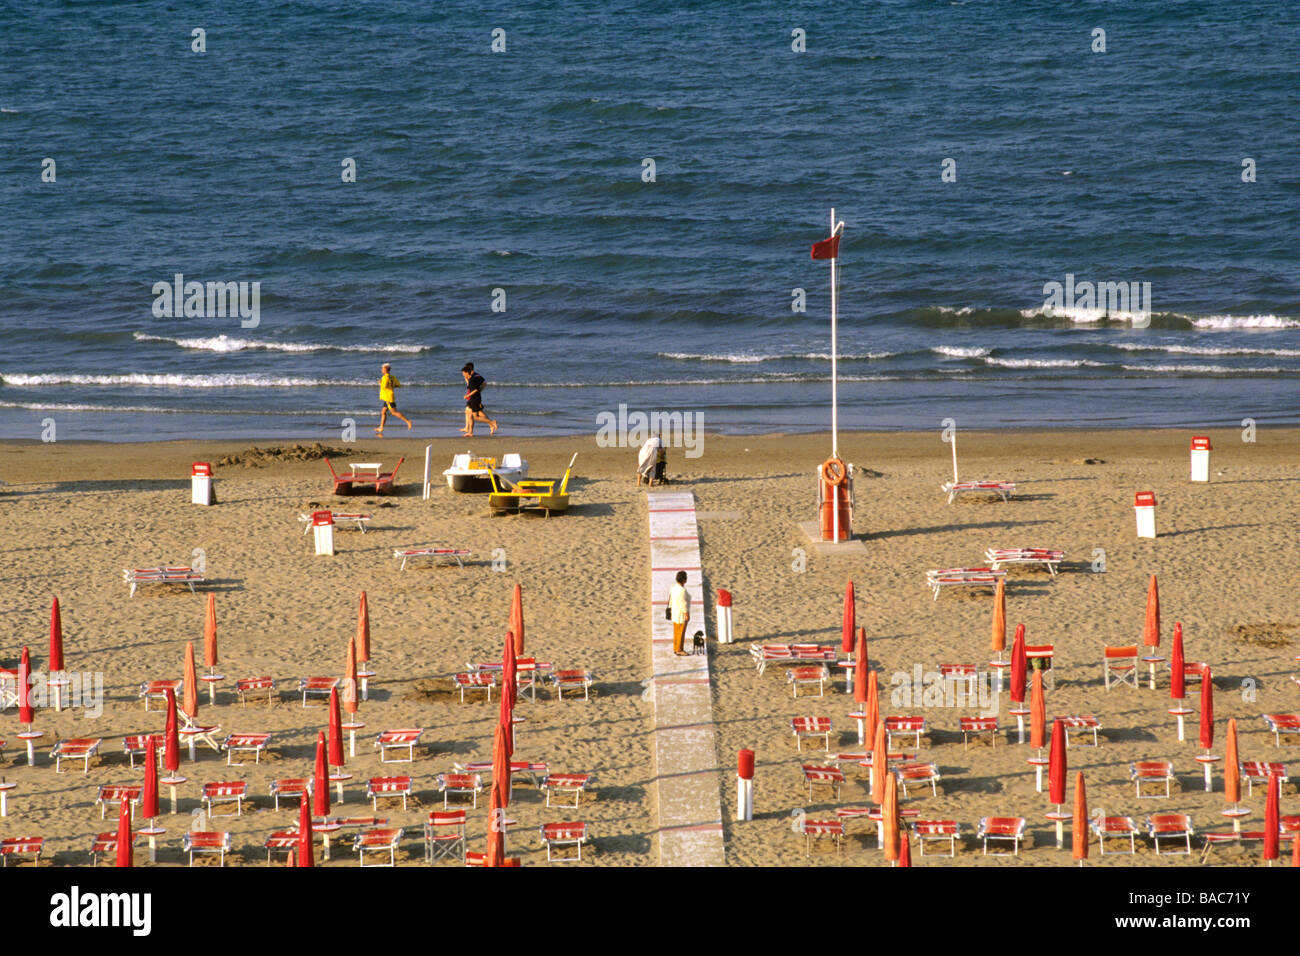 The miramare beach province of rimini italy stock photo for Miramare beach